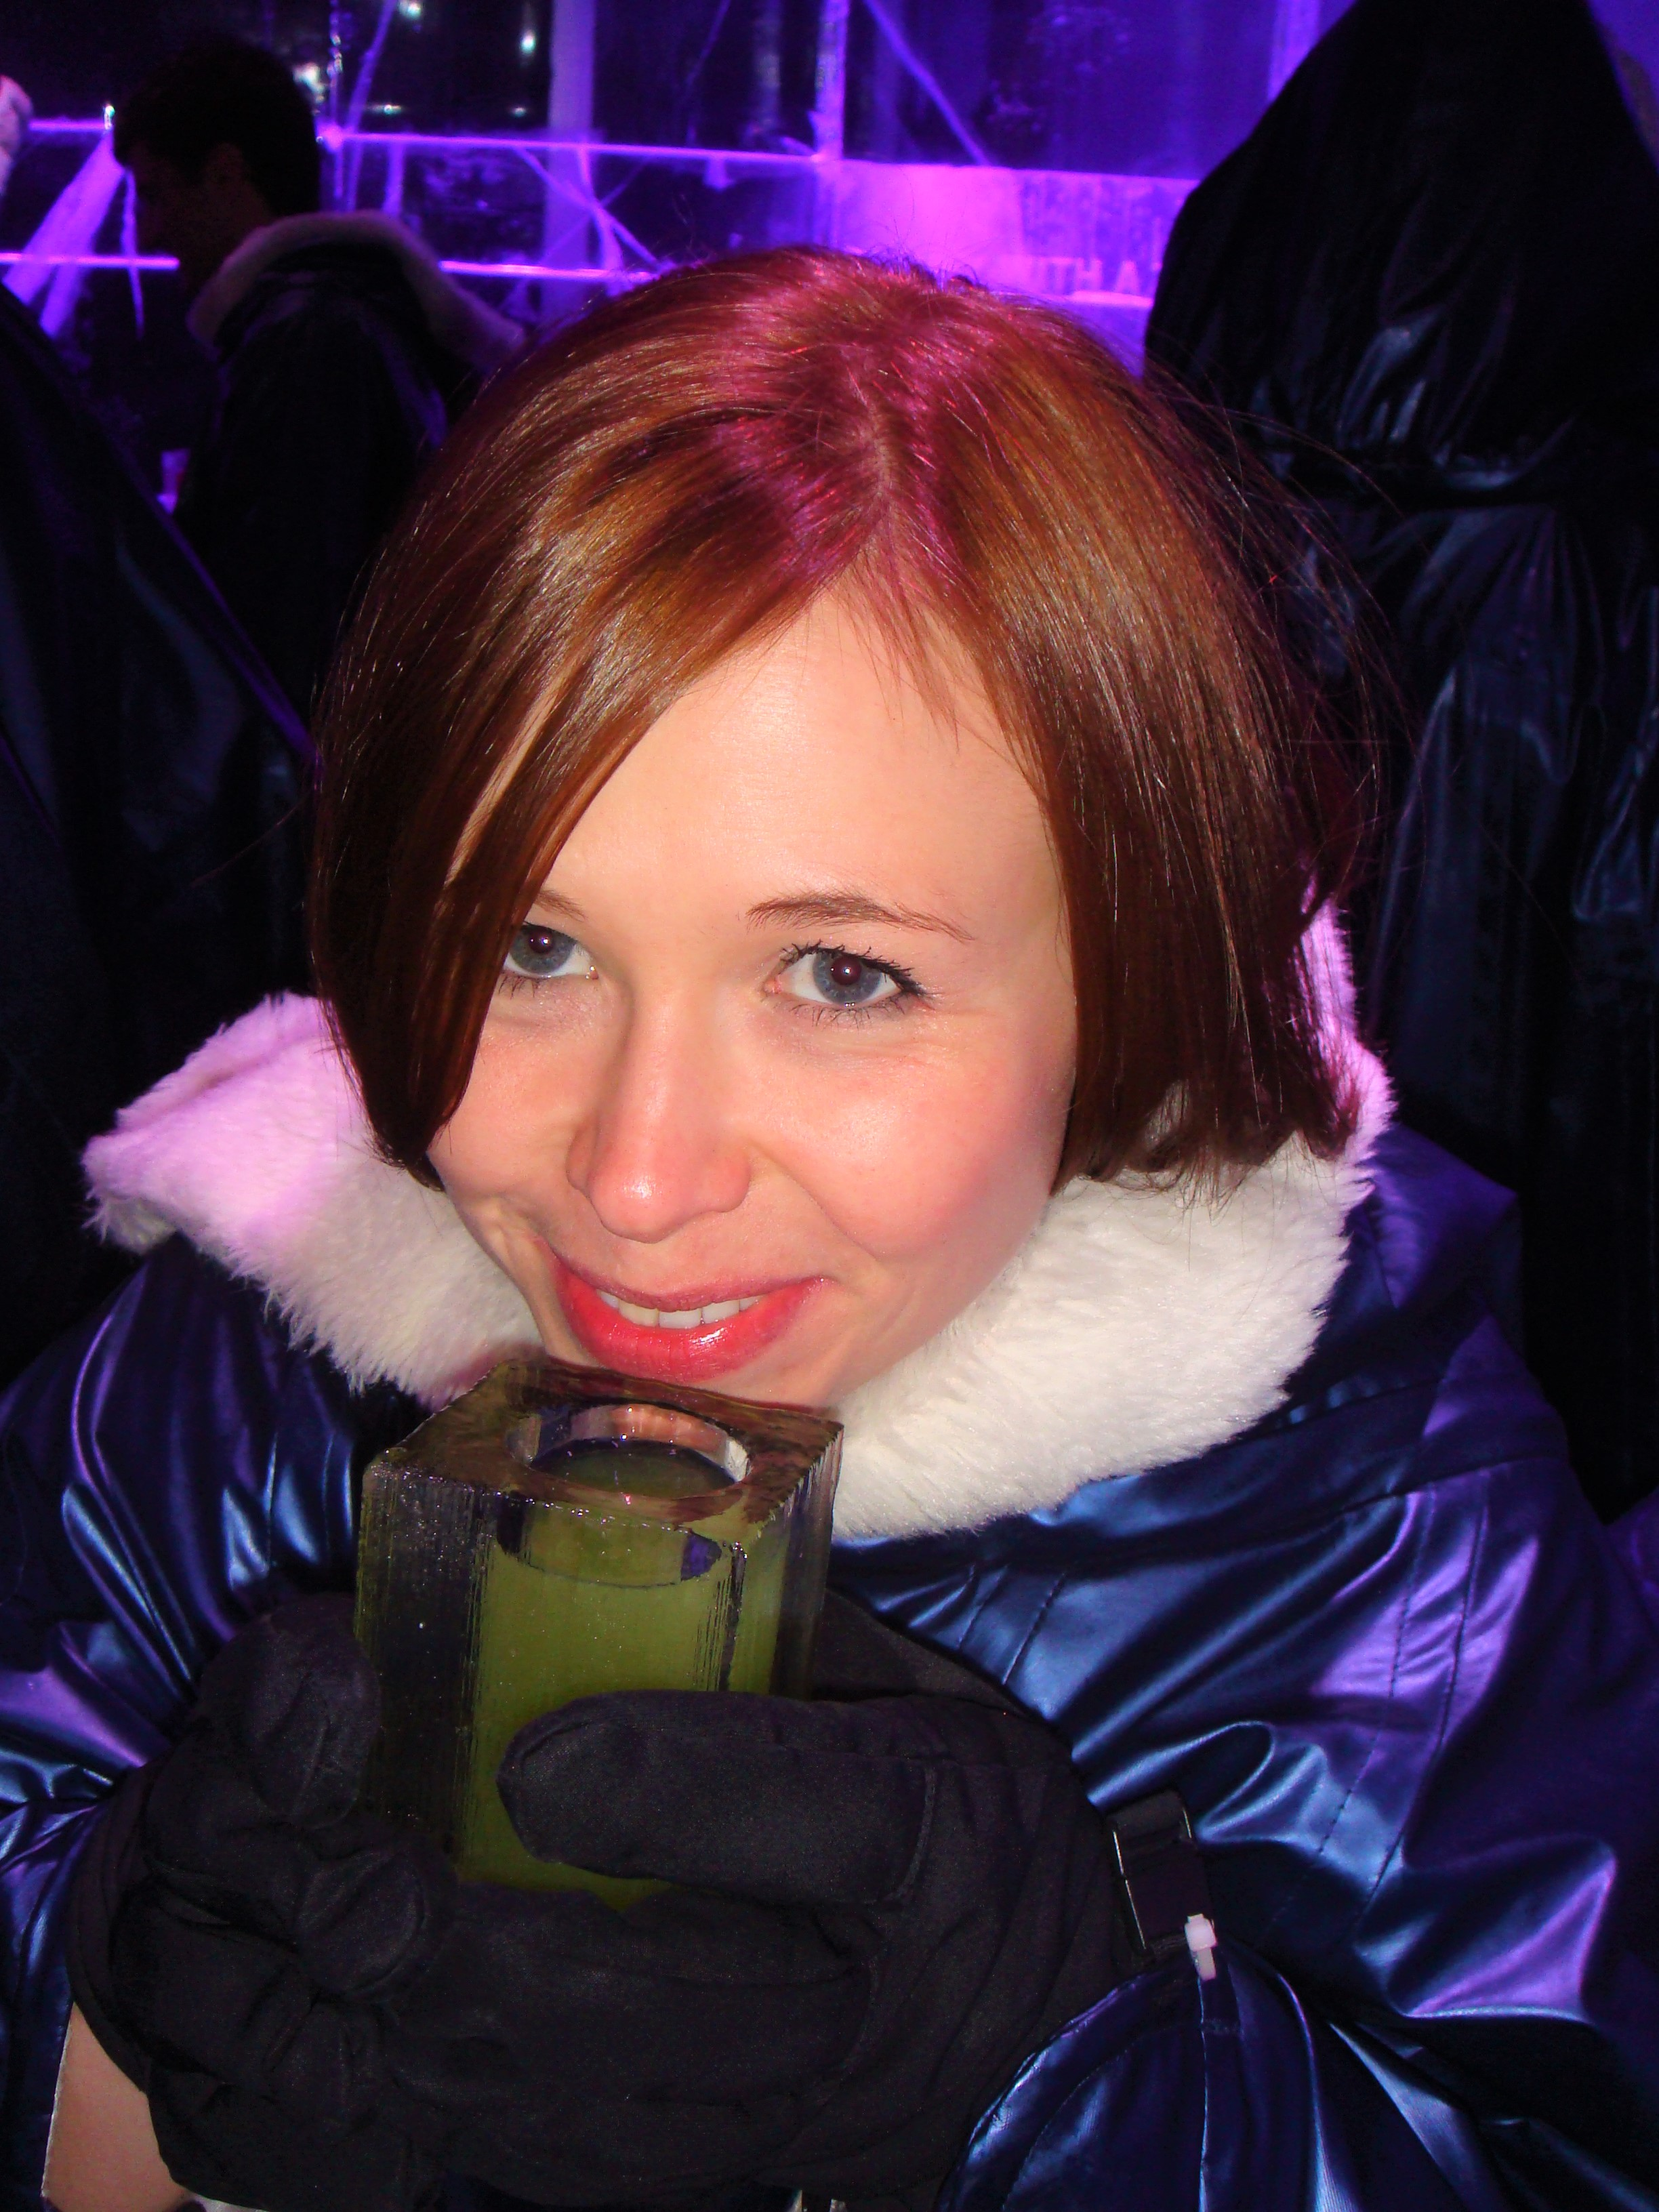 London Ice Bar